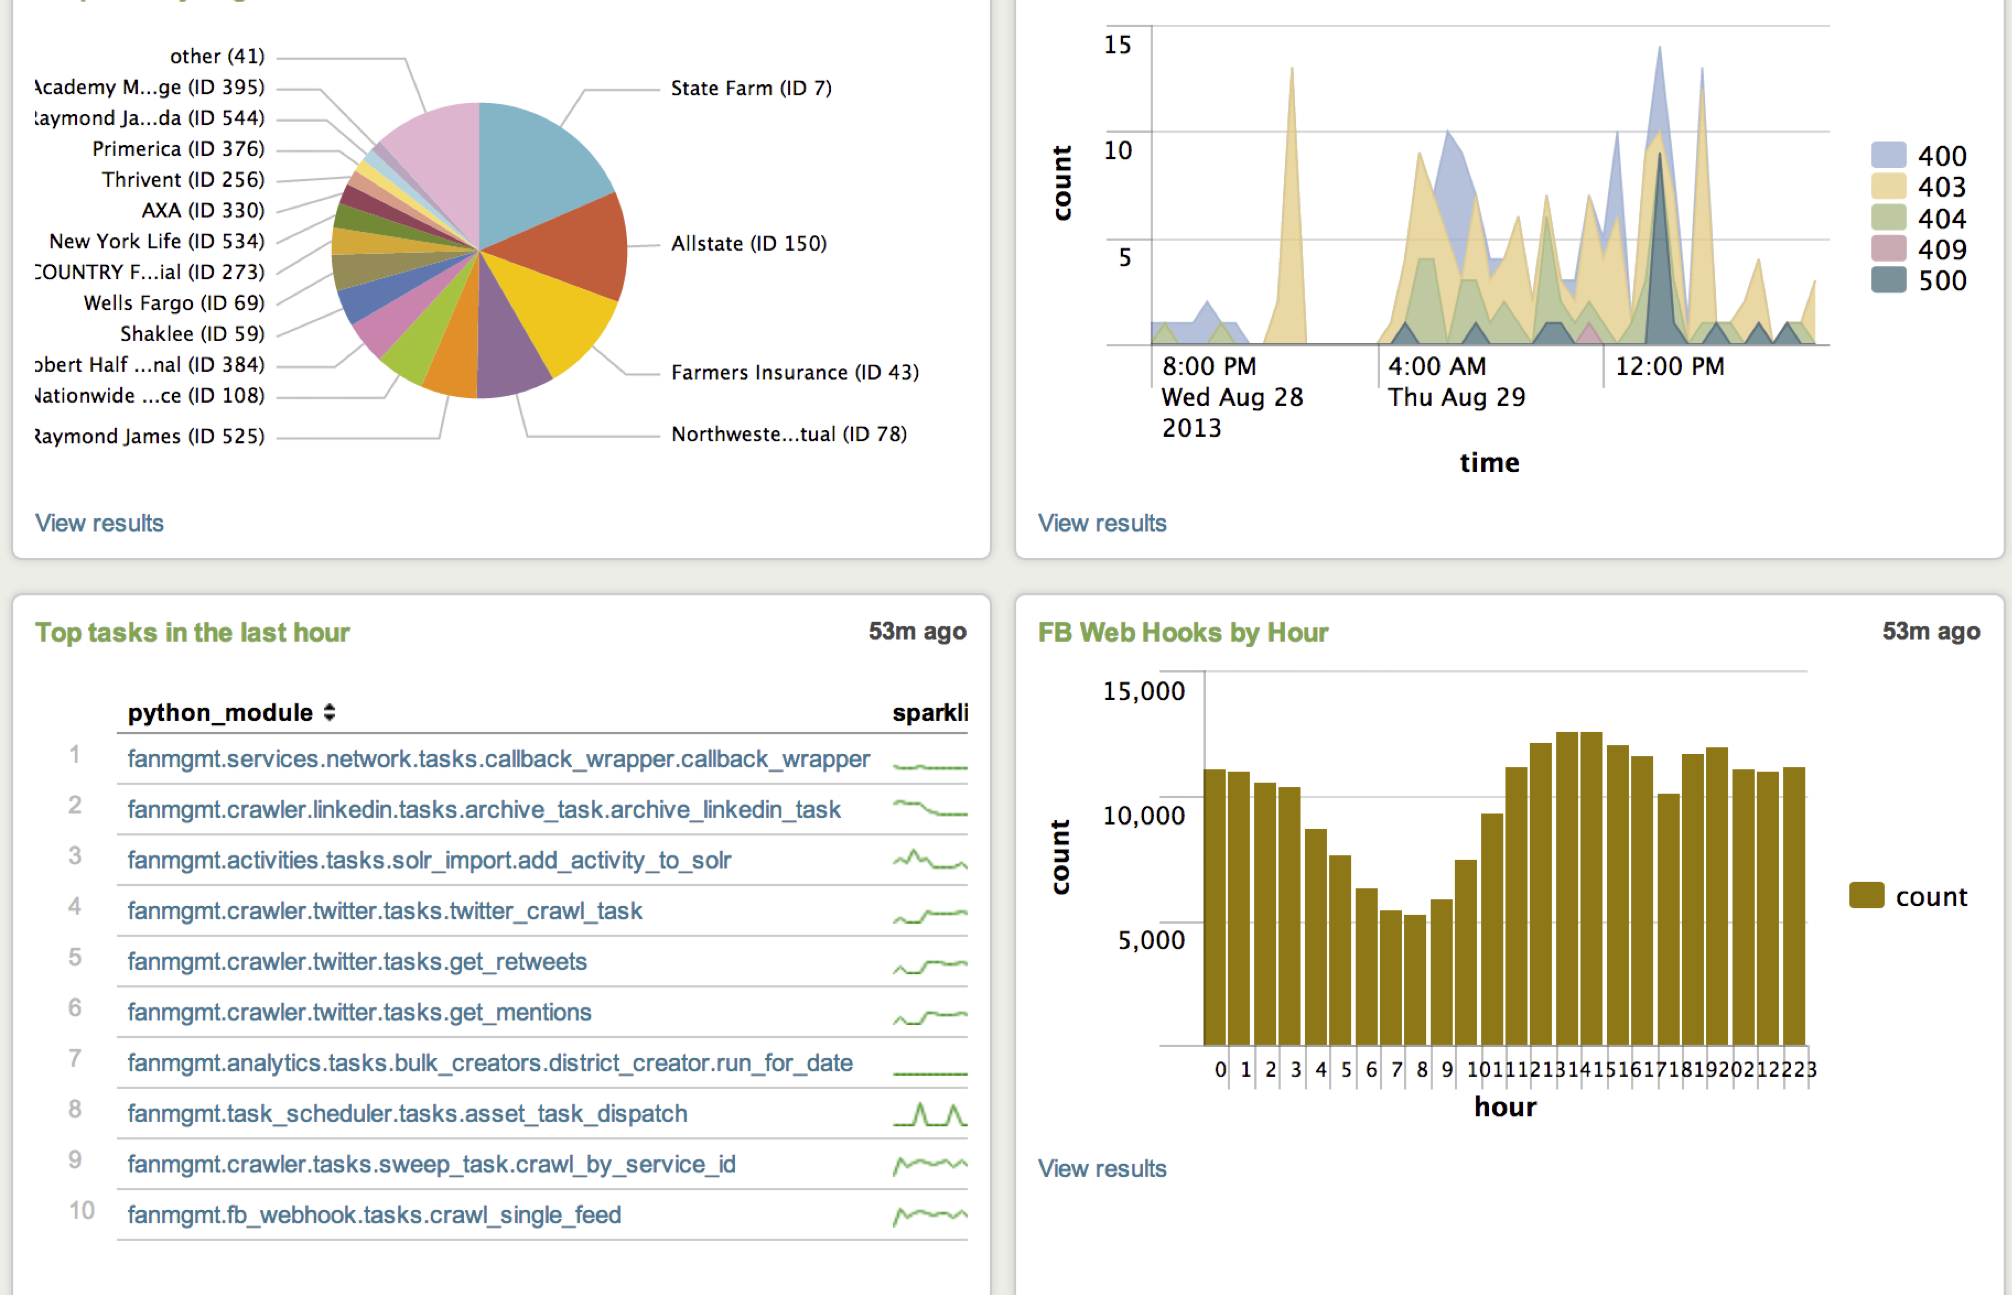 Getting started with Splunk as an Engineer - Chase Seibert Blog